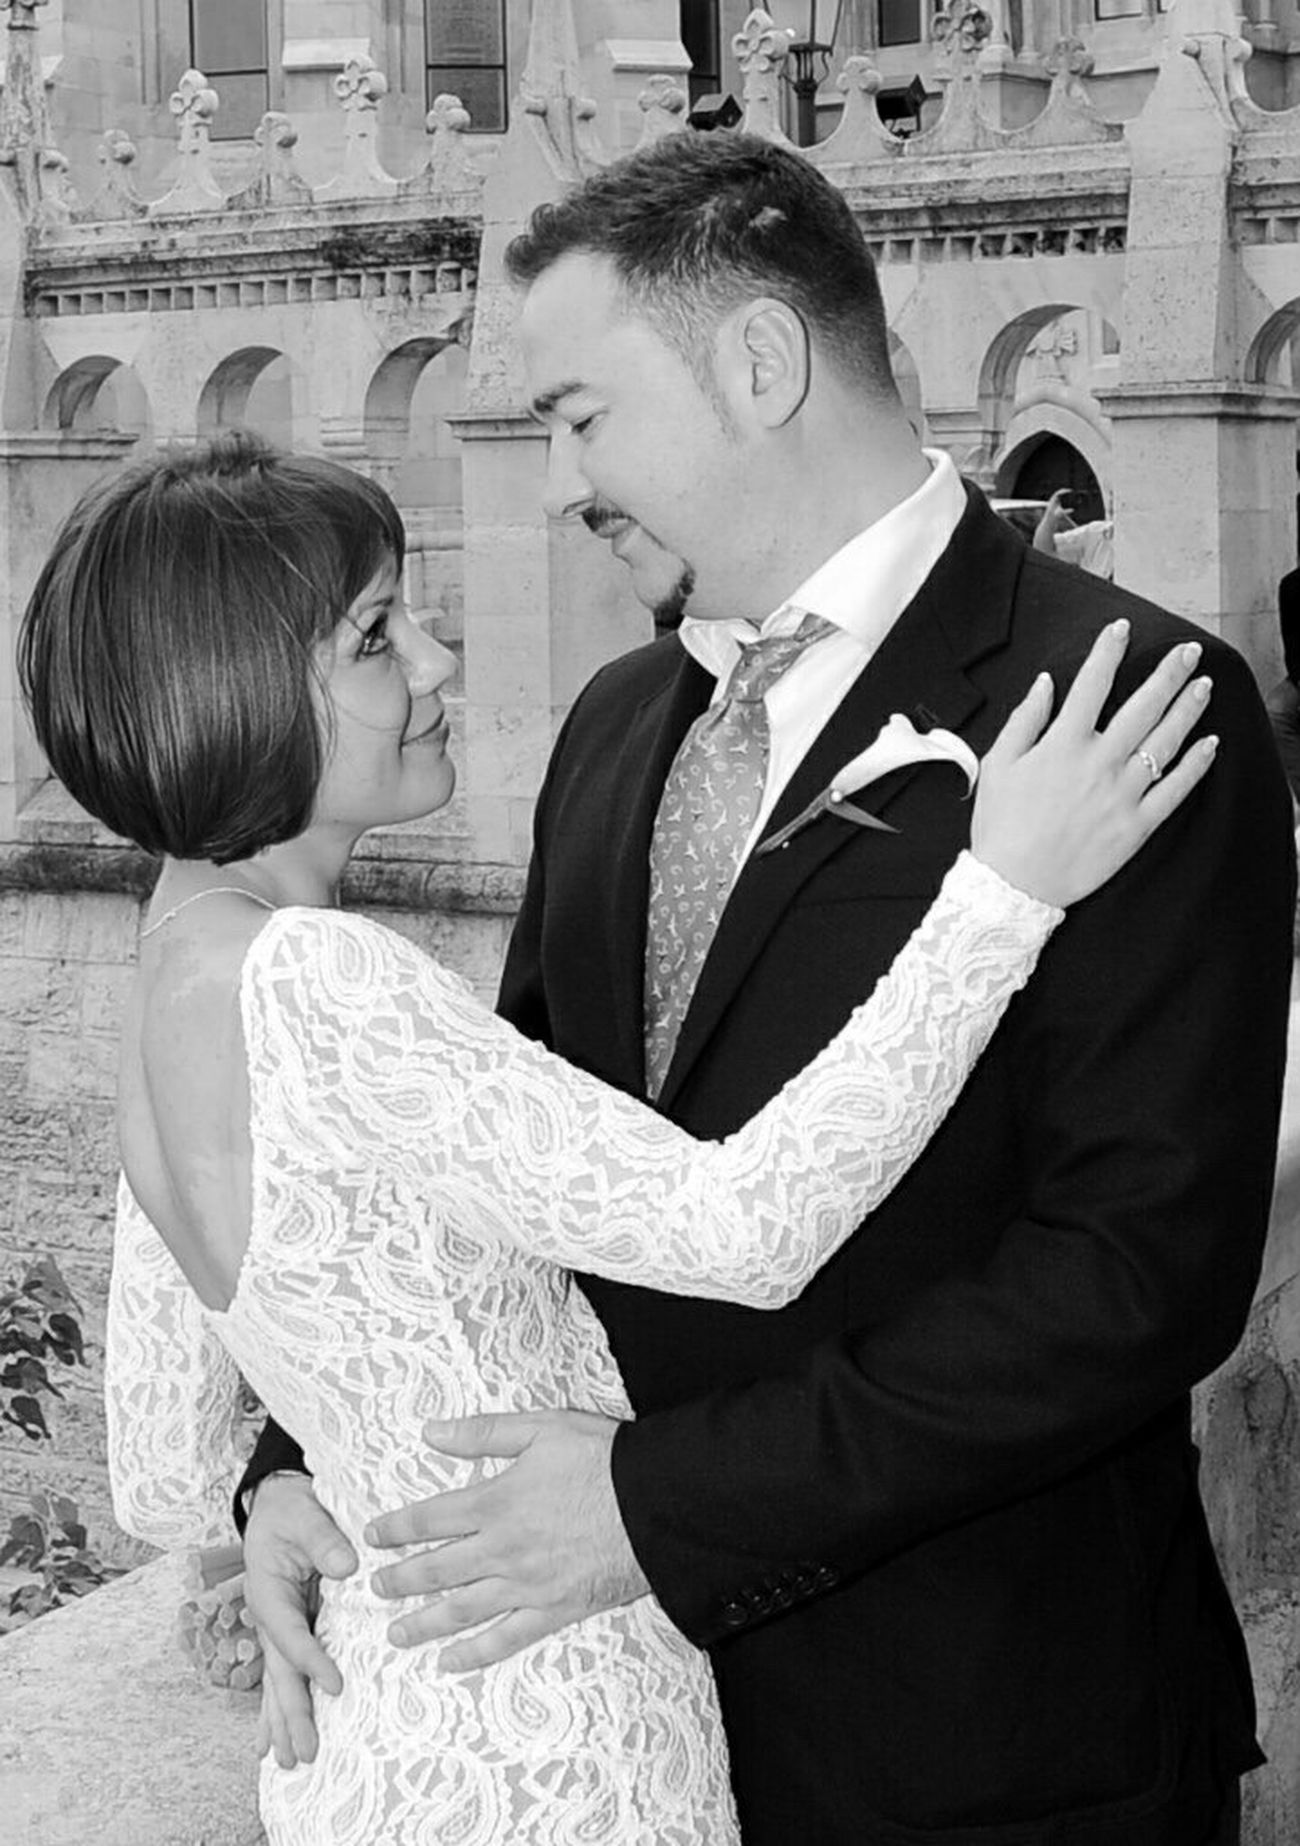 4 Years Together Wedding Anniversary Two People Bride Wedding Dress Wedding Happiness Budapest Fishermens Bastion Halászbástya